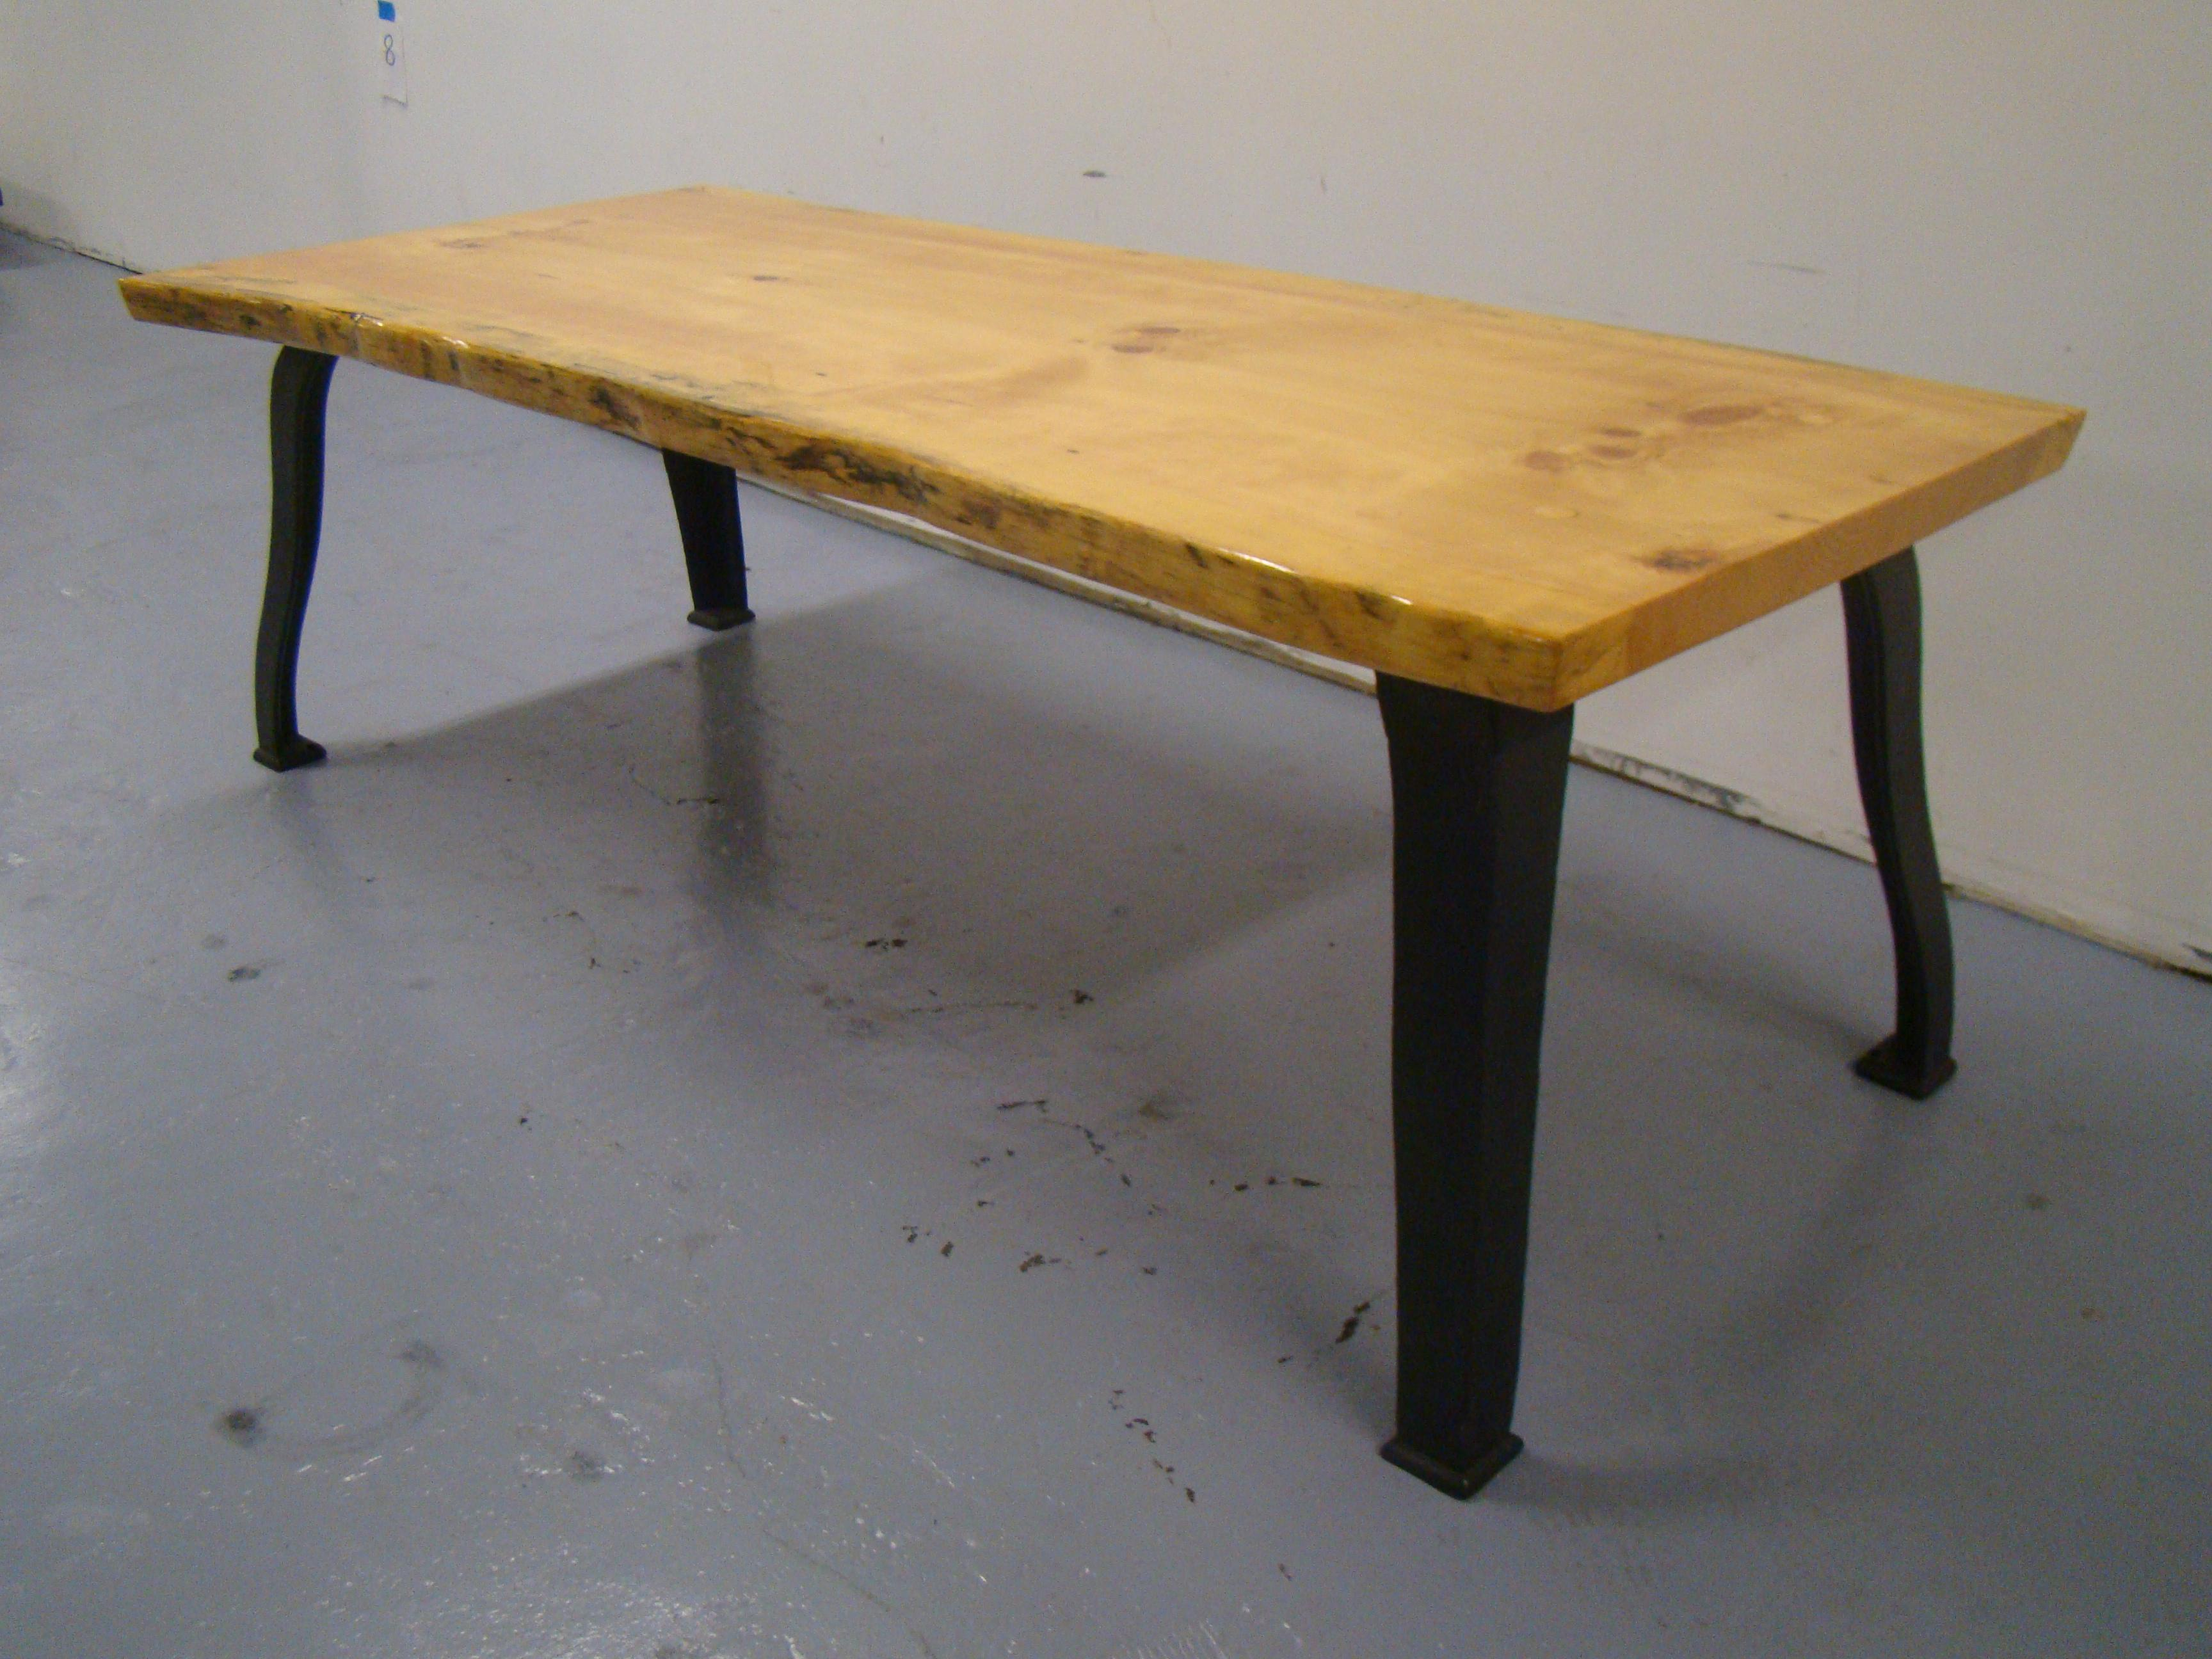 8 foot dining table formal dining industrial modern style pine live edge 8foot dining table for sale image chairish